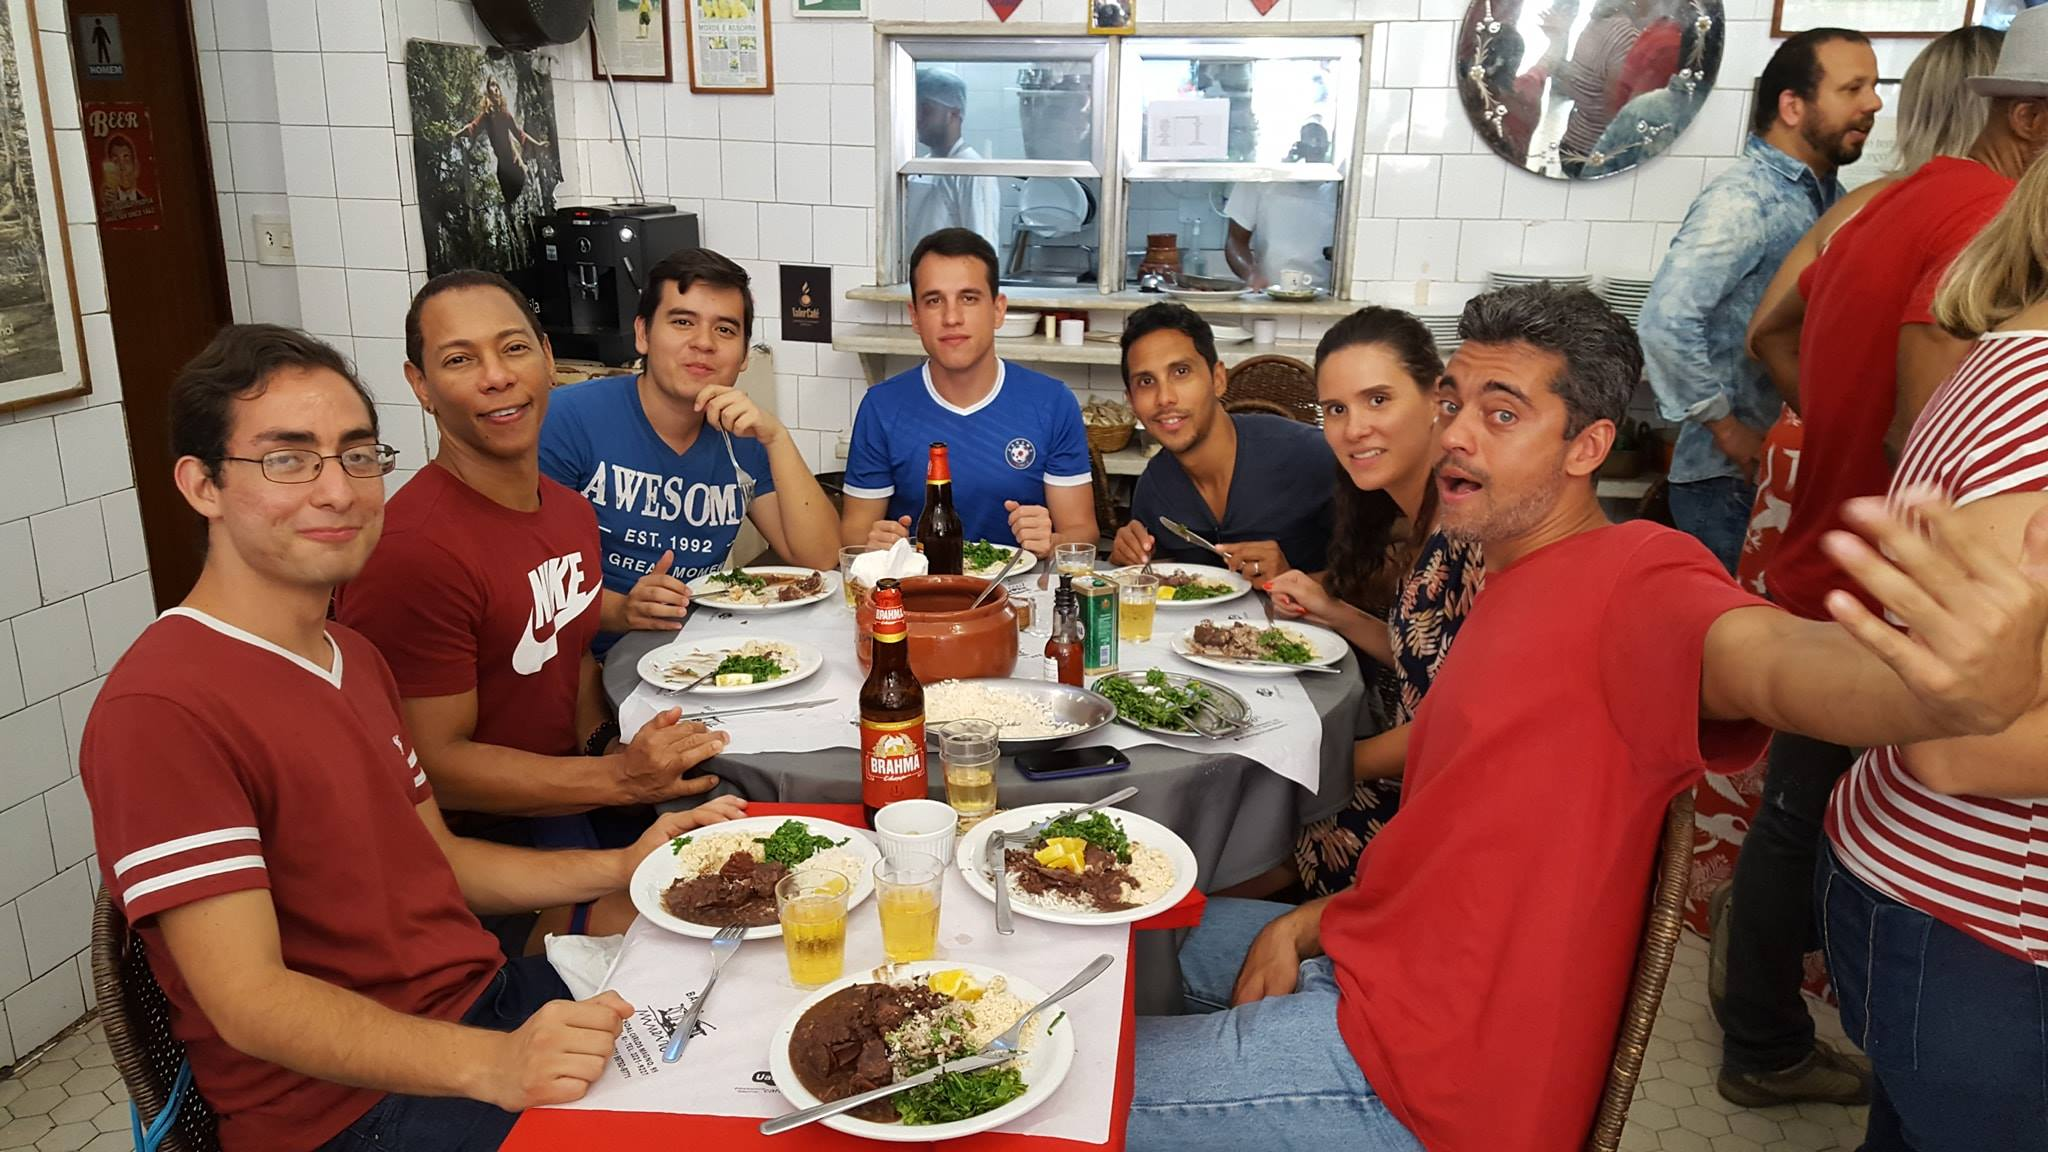 Guess who tried Feijoada for the first time! Eating feijoada at bar do Mineiro in Santa Teresa, Rio de Janeiro.